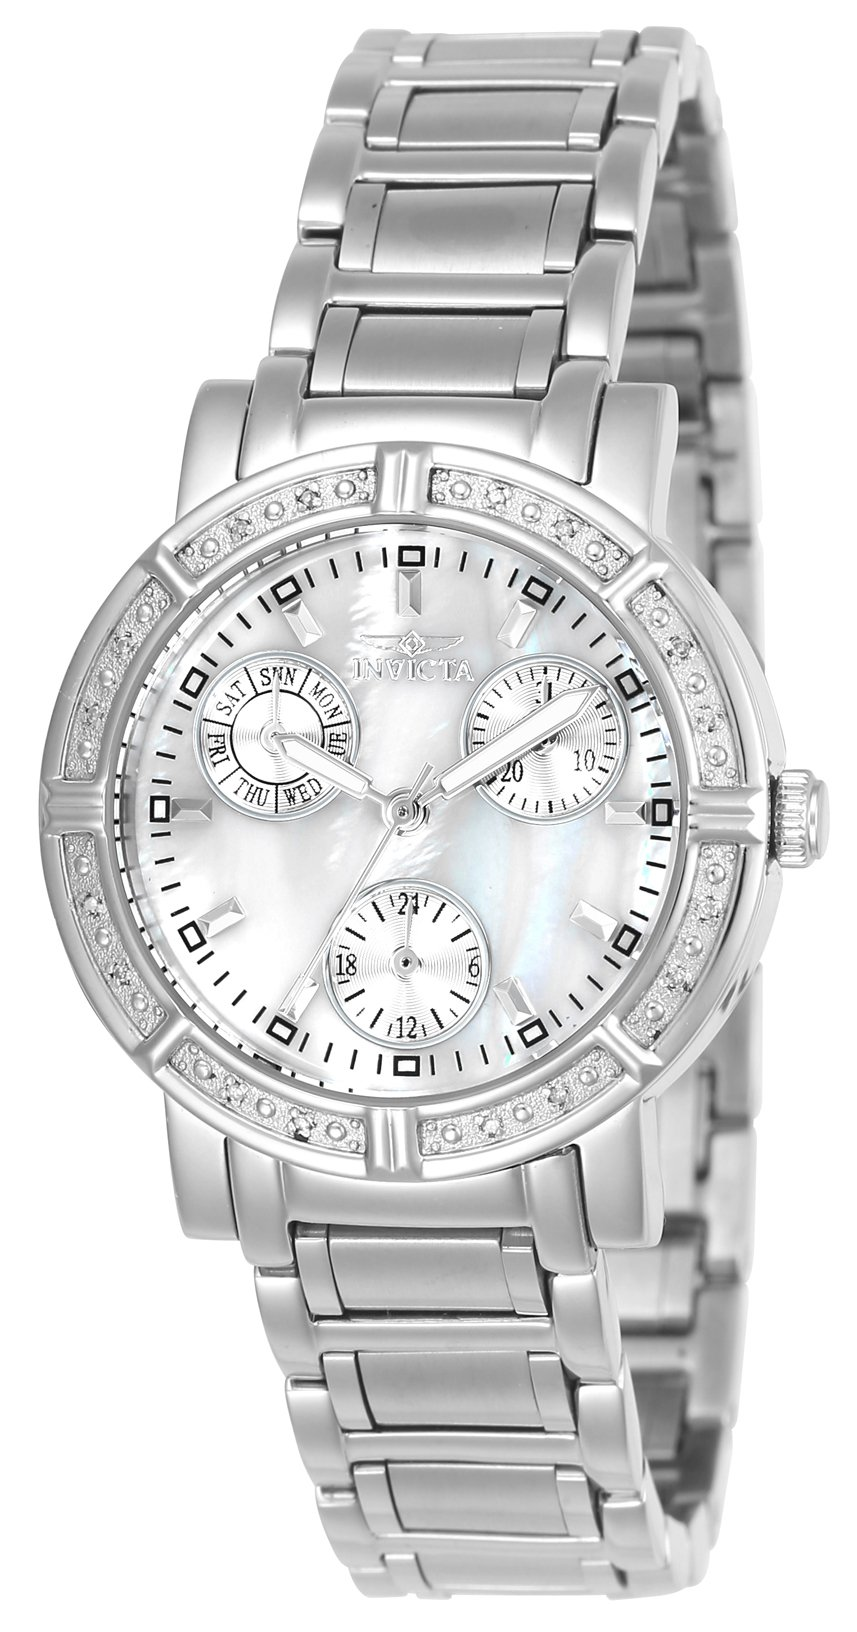 Invicta Women's 4718 II Collection Limited Edition Diamond Chronograph Watch by Invicta